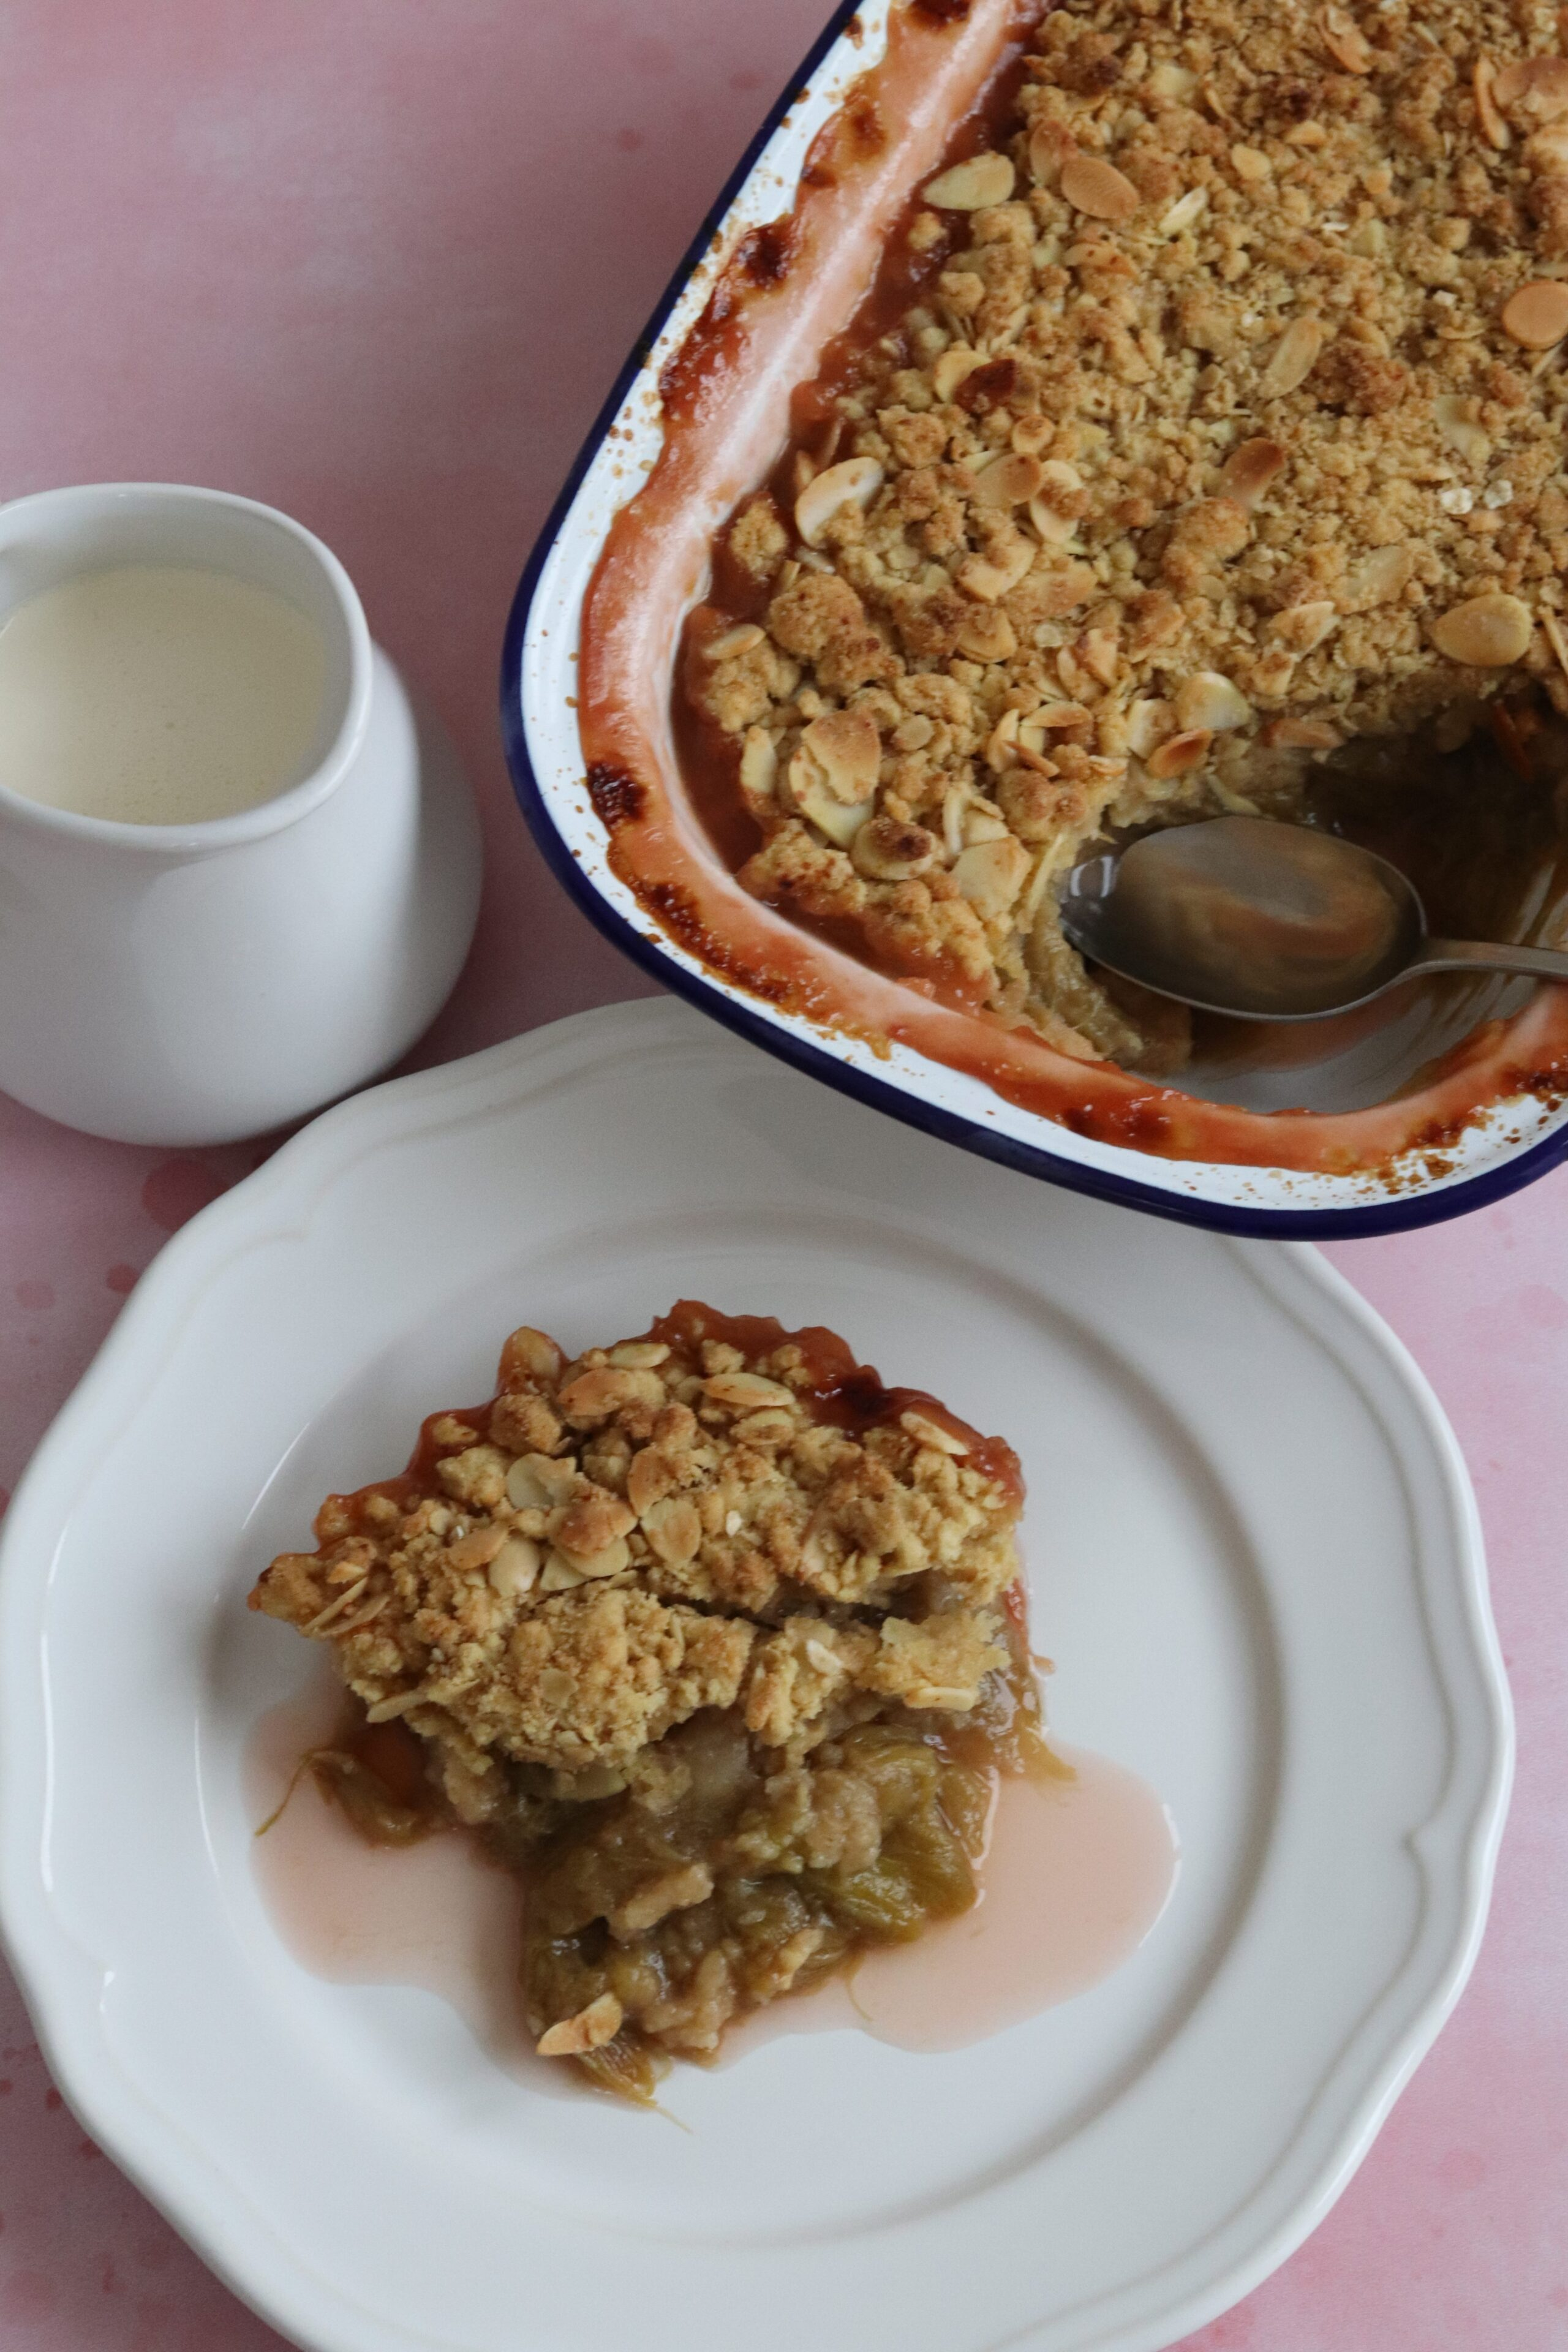 Port rhubarb crumble by Curly's Cooking